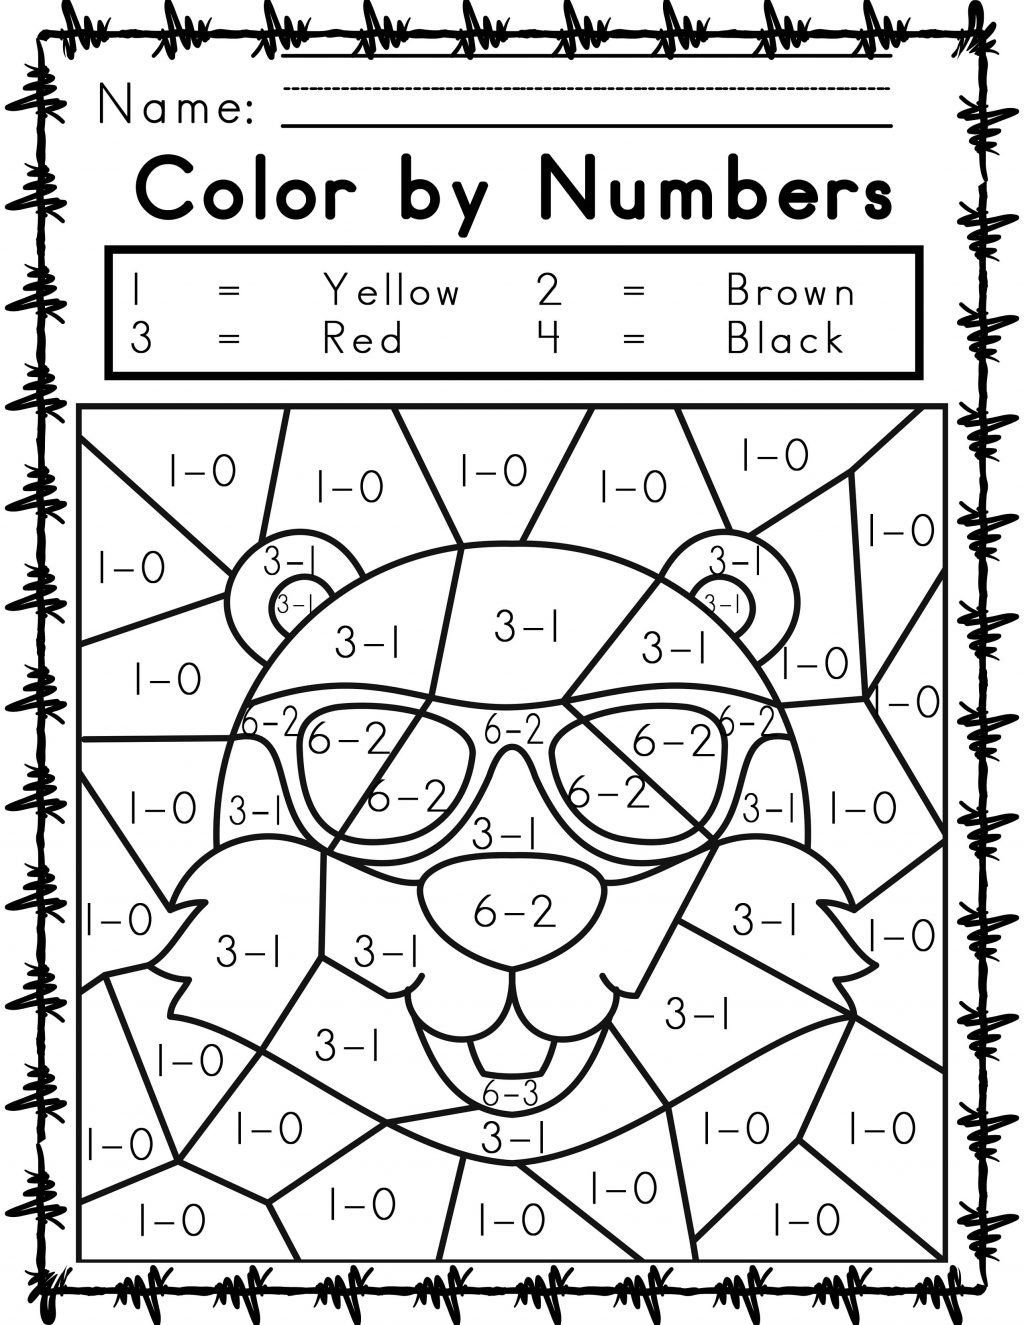 Free Saxon Math Worksheets Reading Worskheets Spider Man